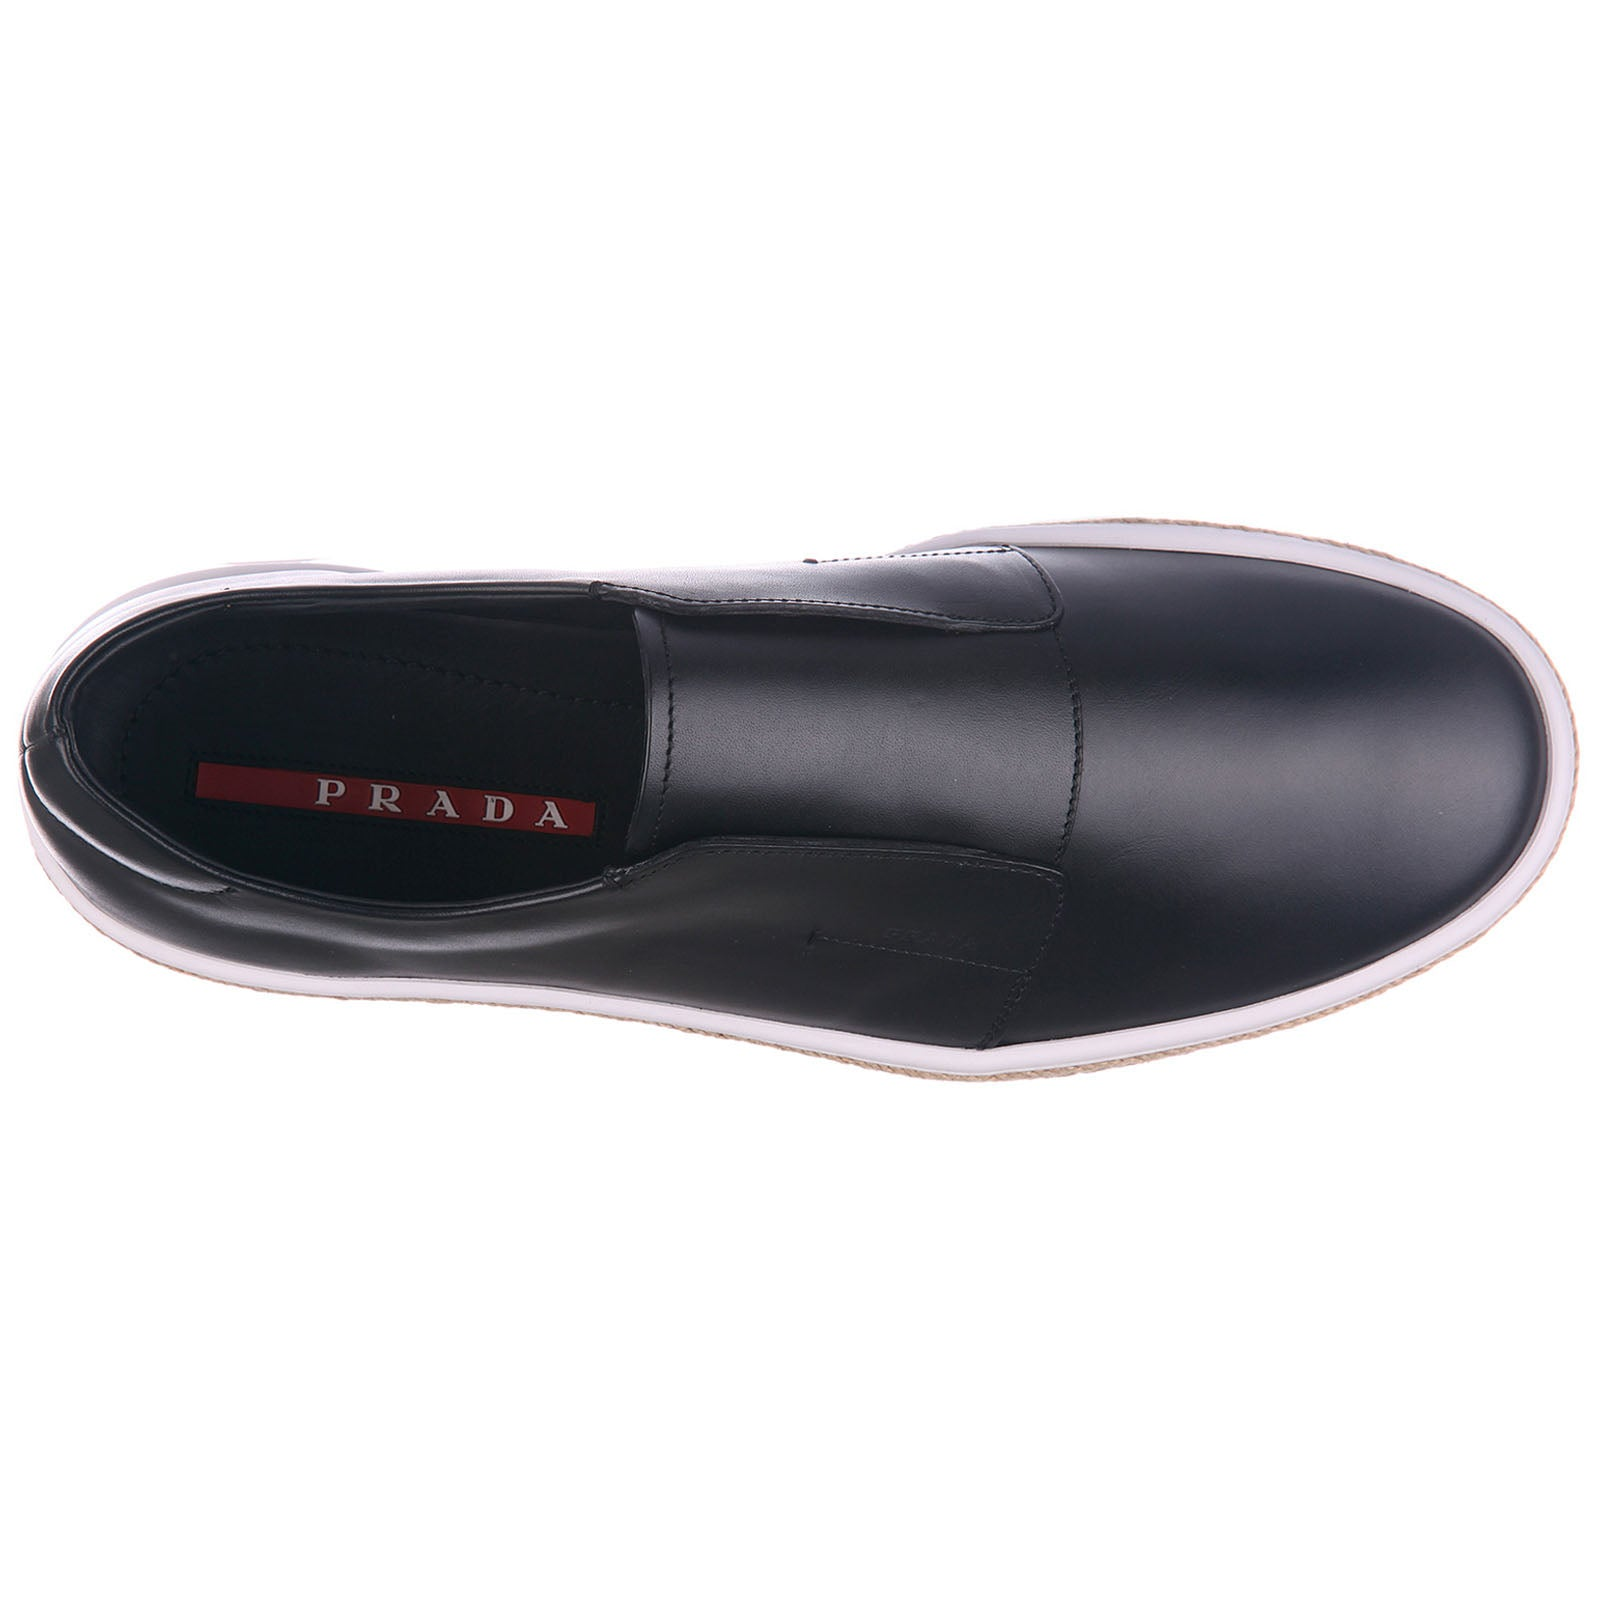 Prada Slip-On Sneakers